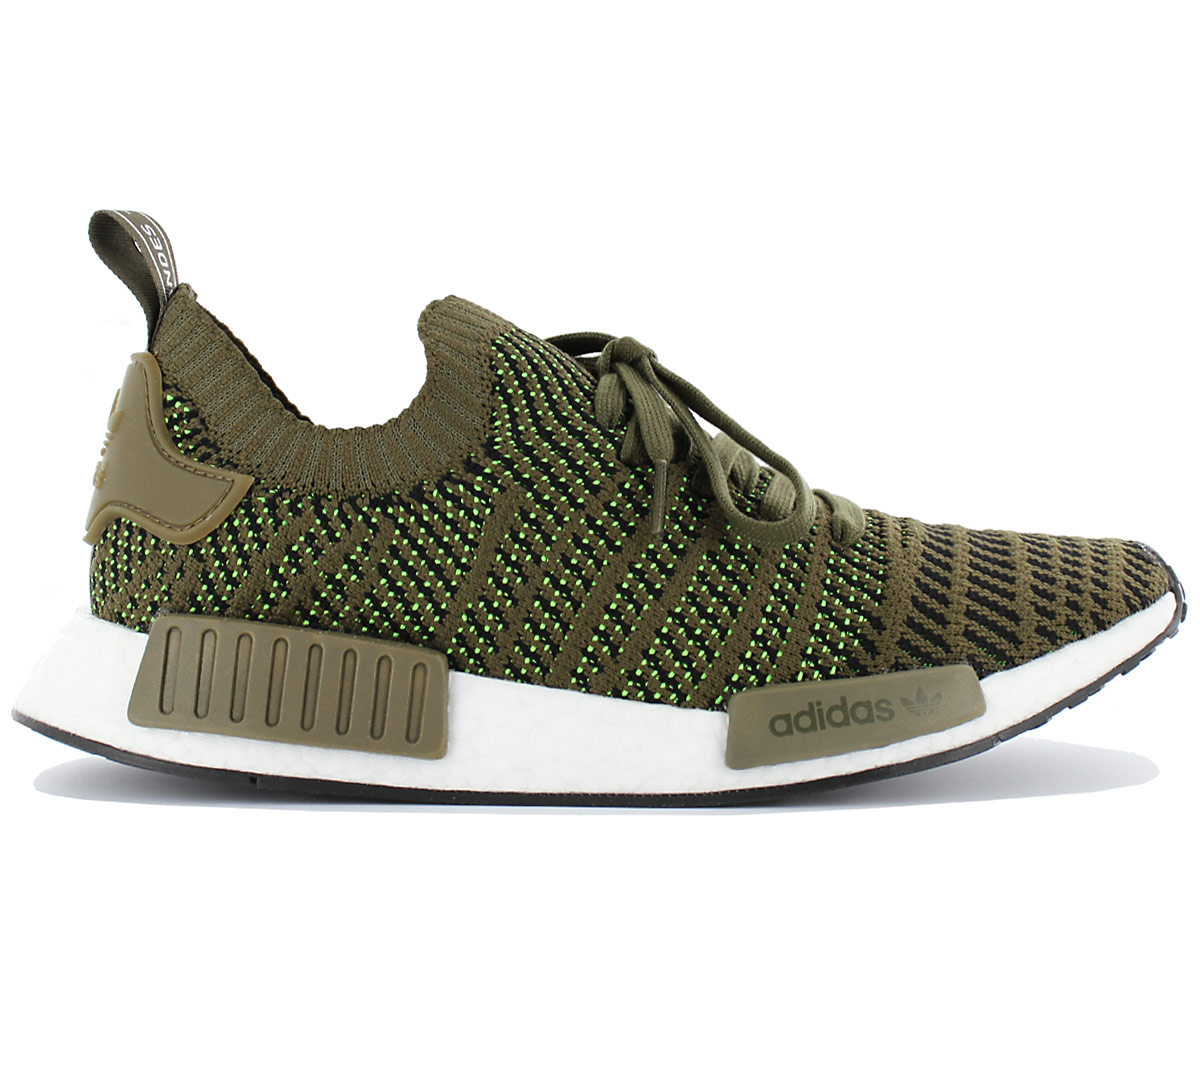 Details about Adidas Nmd R1 Stlt Pk Primeknit Men's Boost Sneaker Shoes Olive Green CQ2389 New